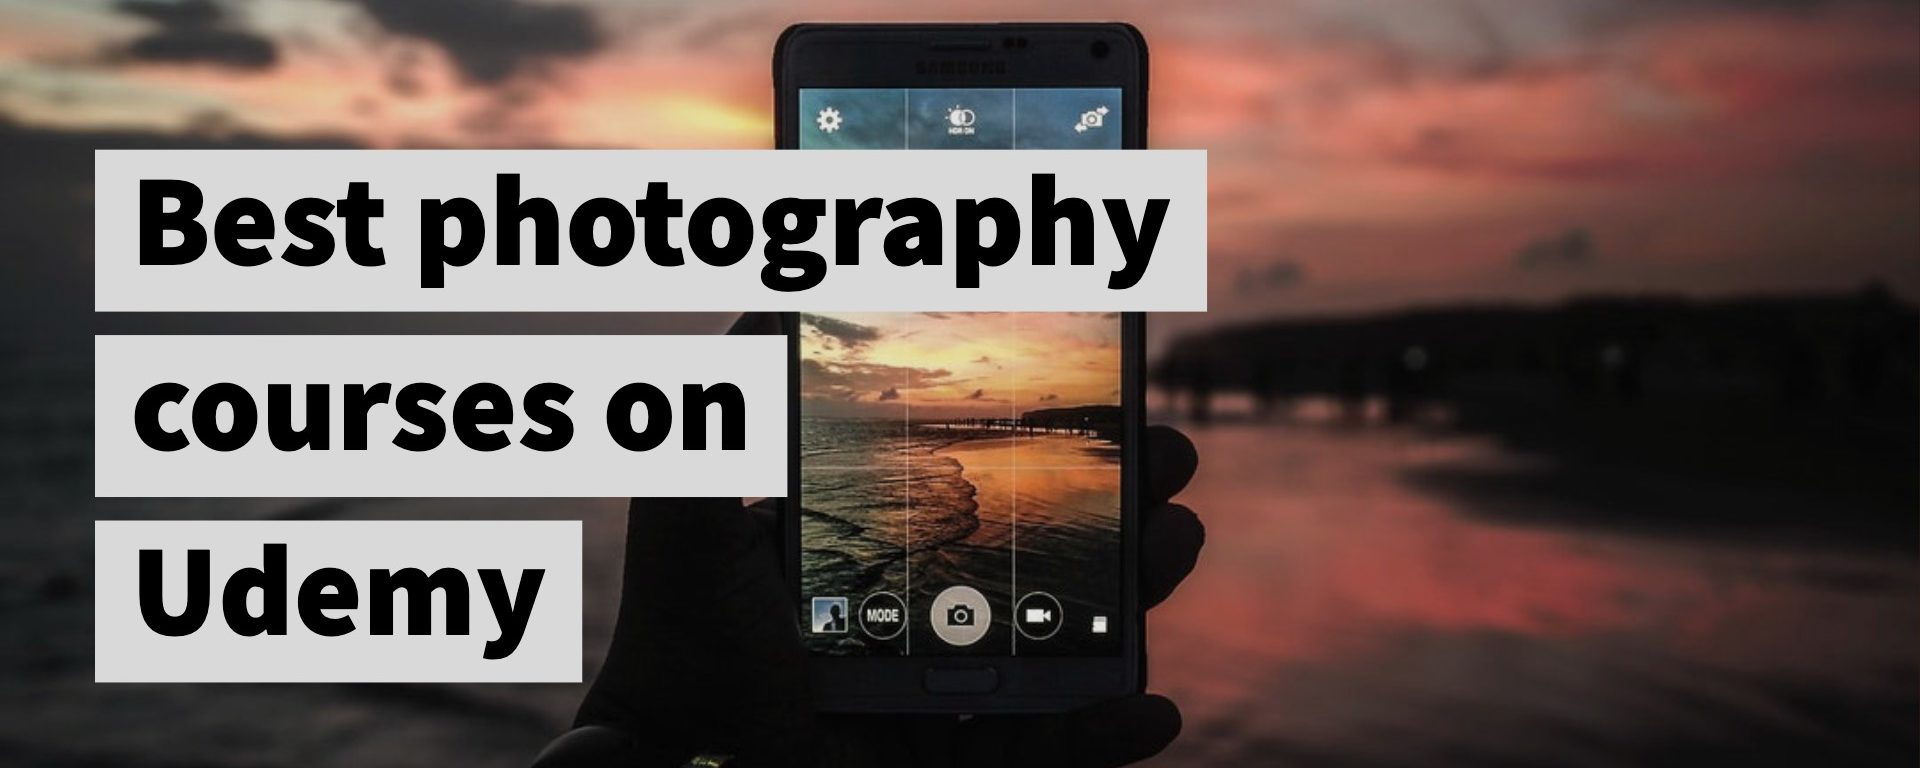 Best online photography courses on Udemy | TechRev me